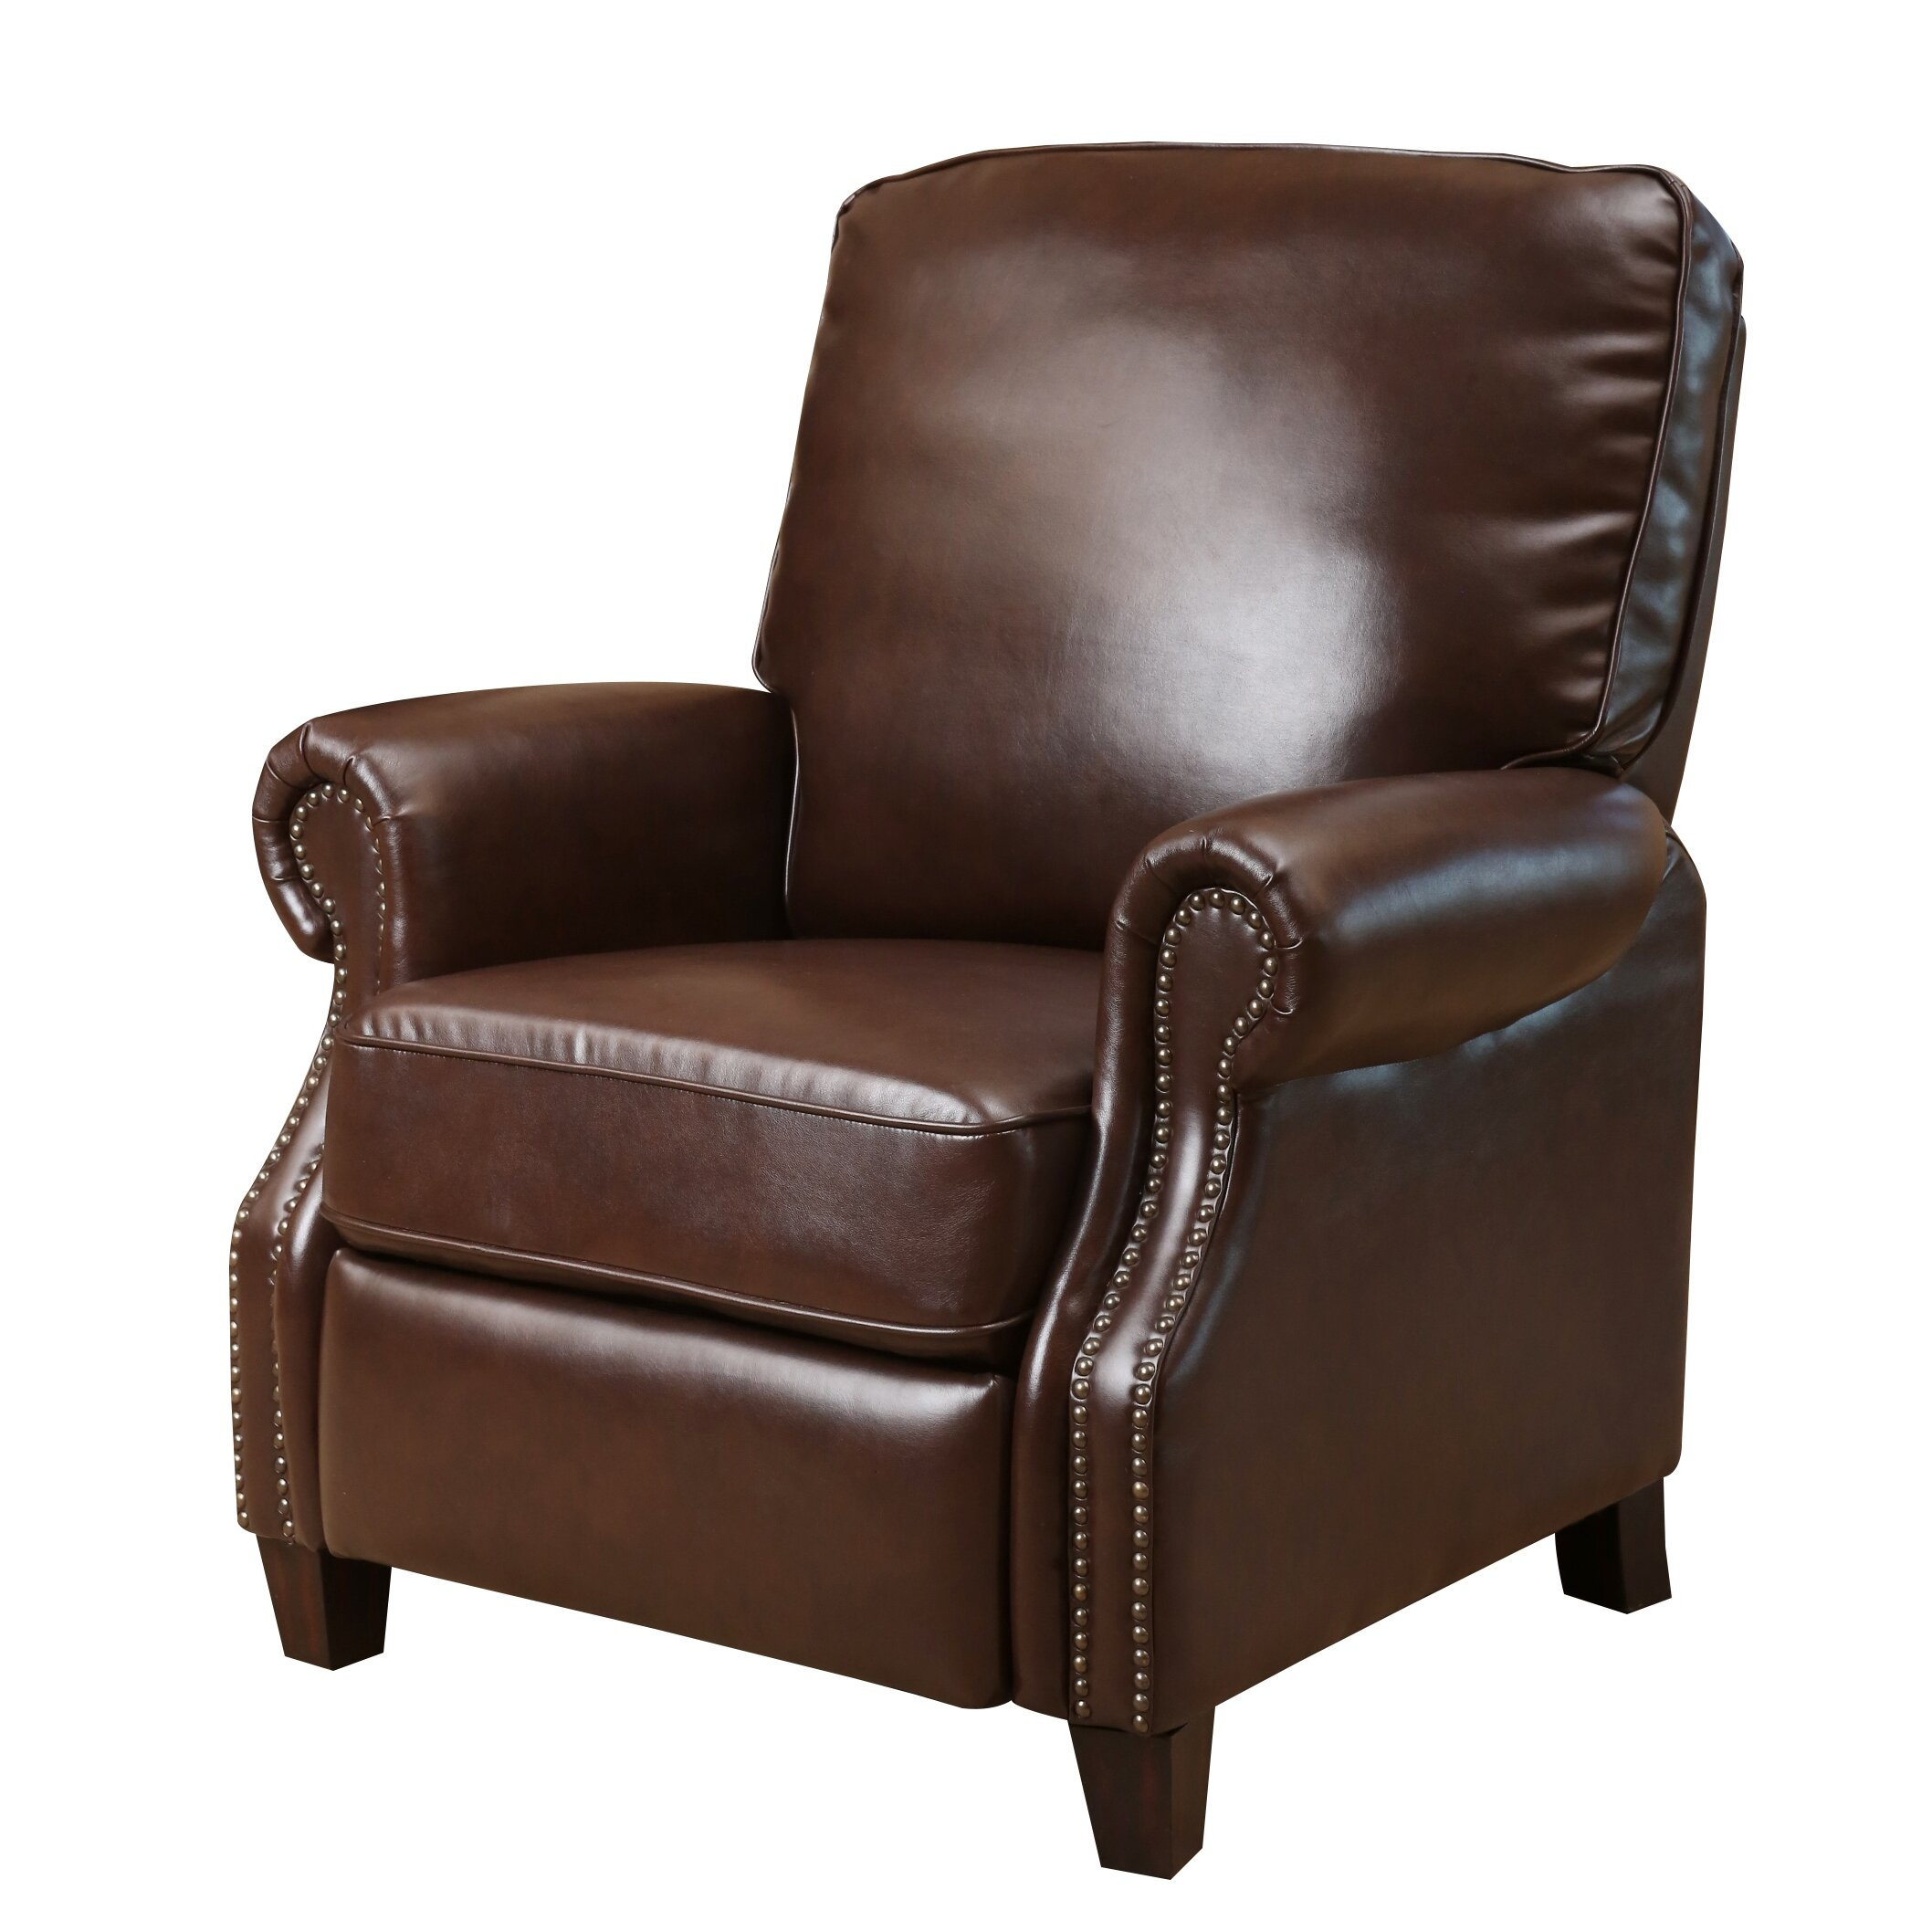 White Rocker Brown Leather Recliner Chair – Bedroom Recliner Chairs